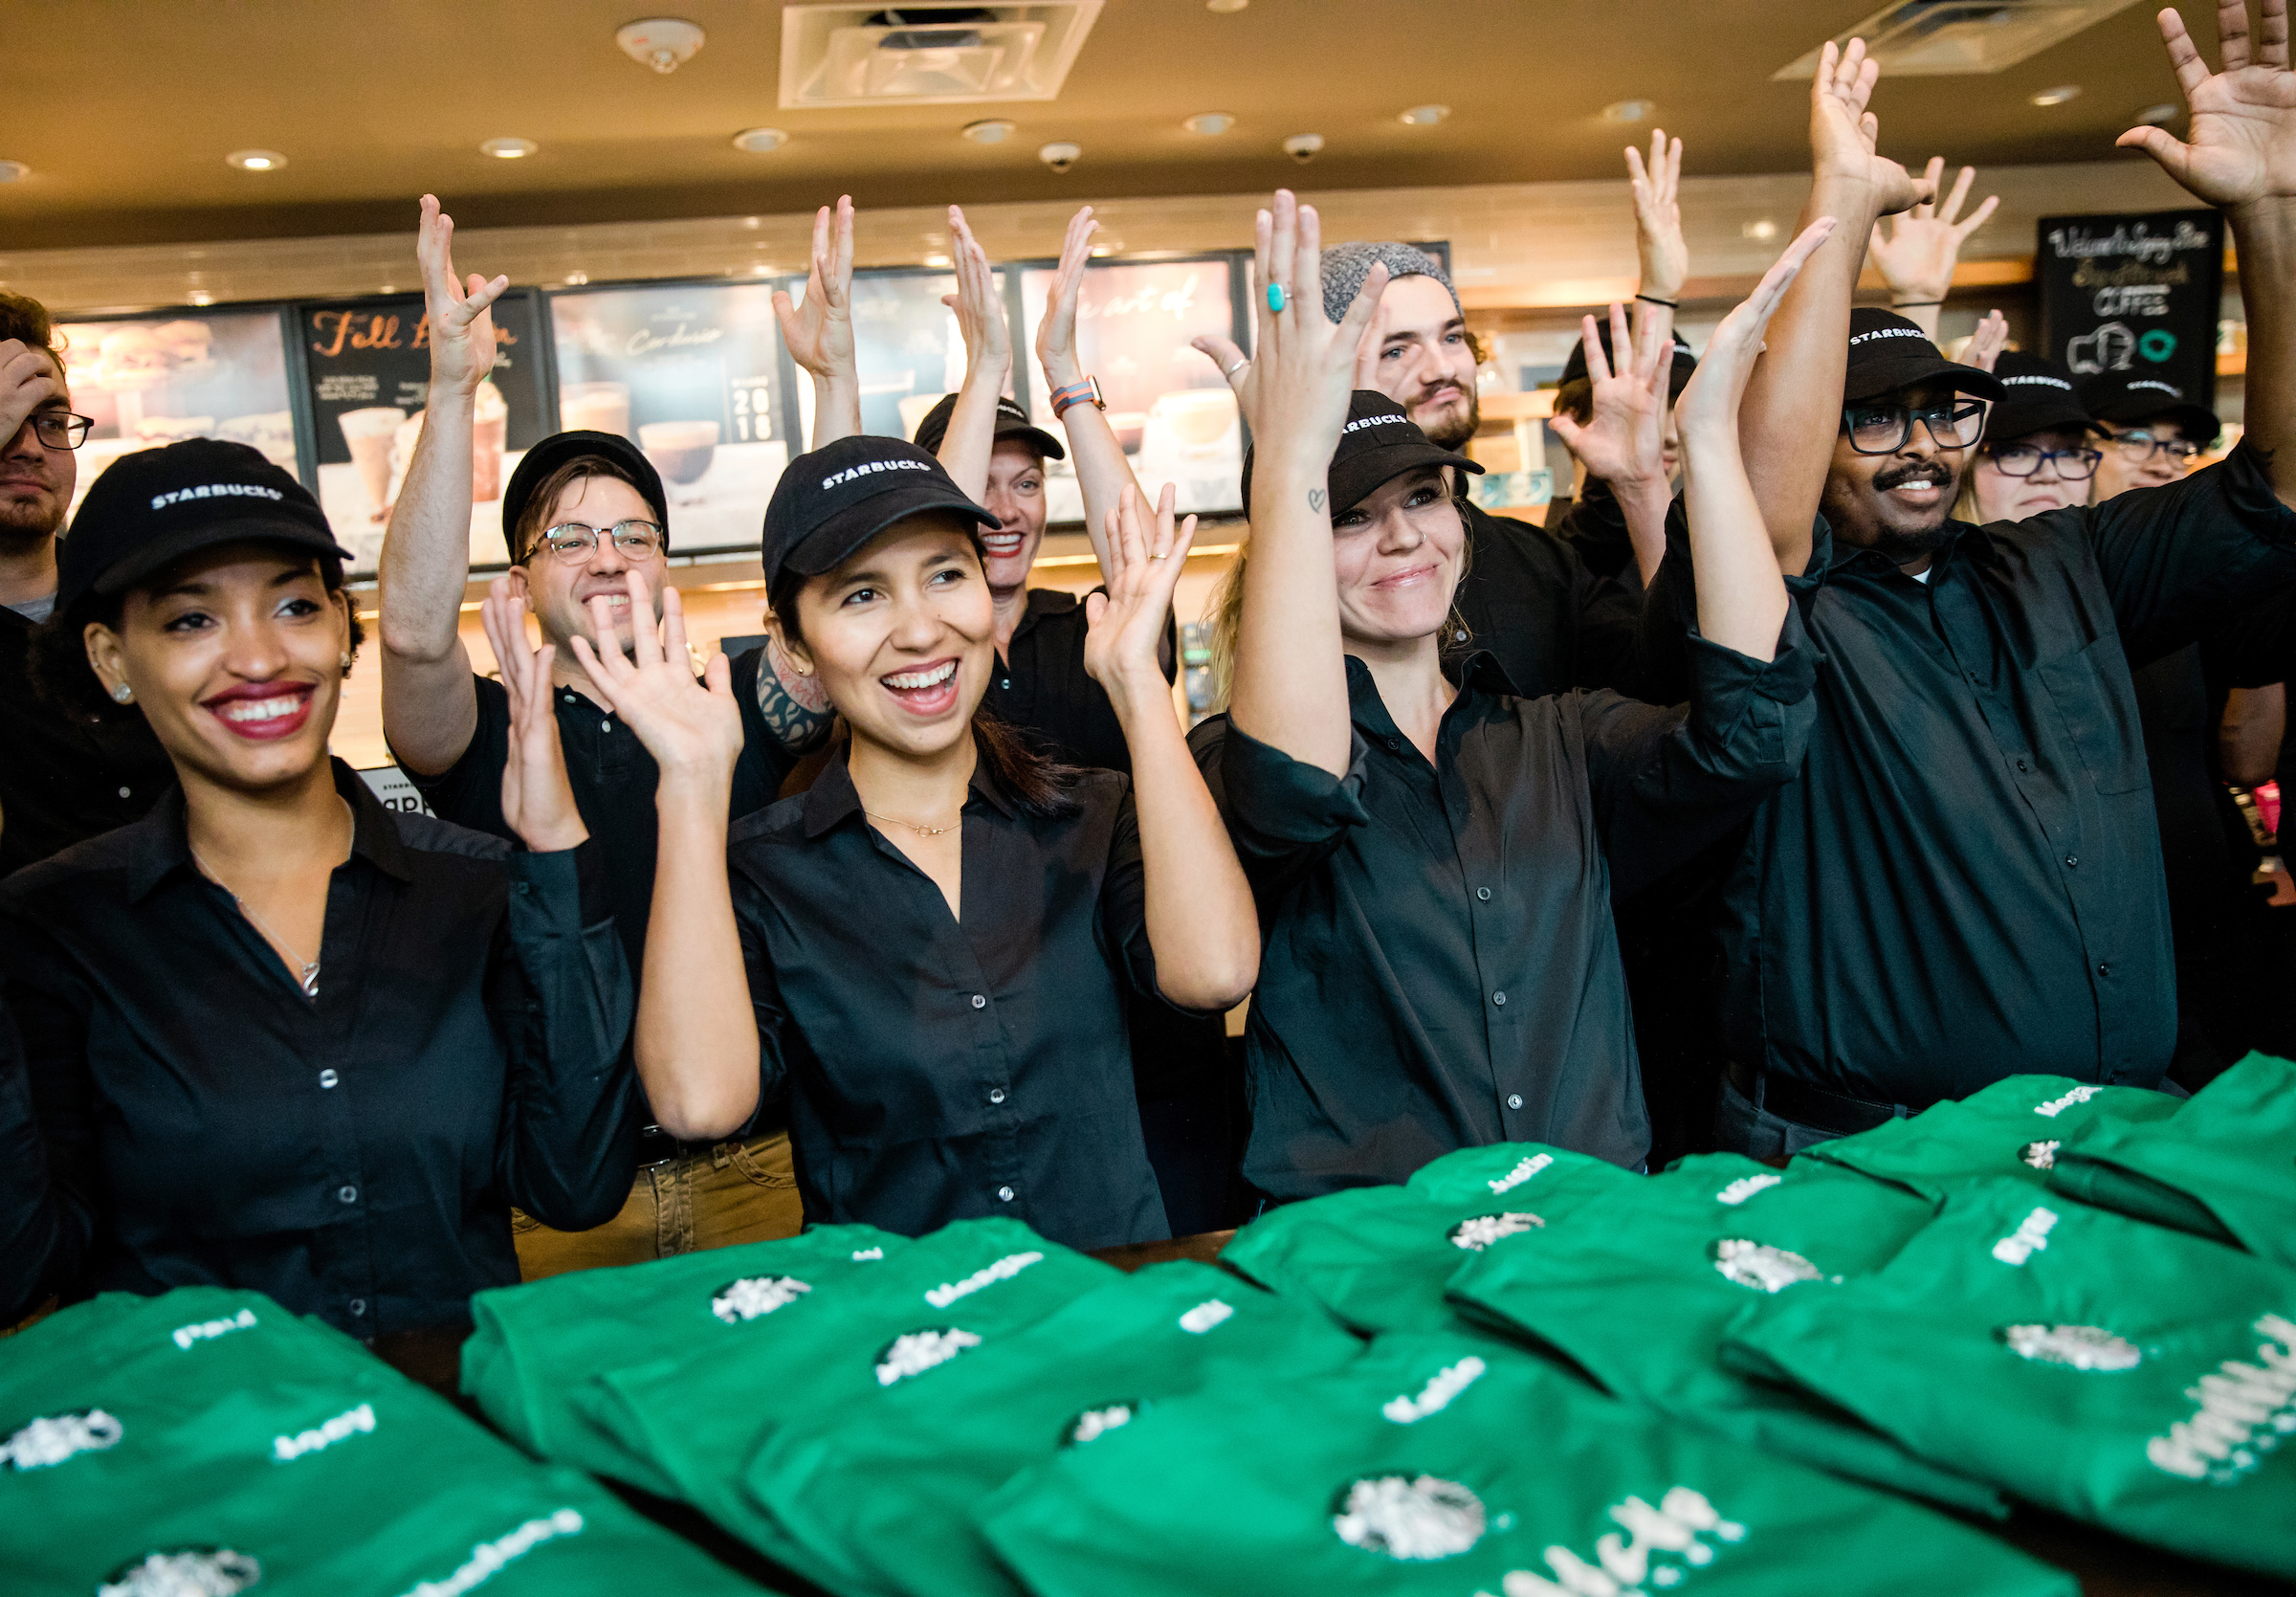 starbucks policy on dating co workers